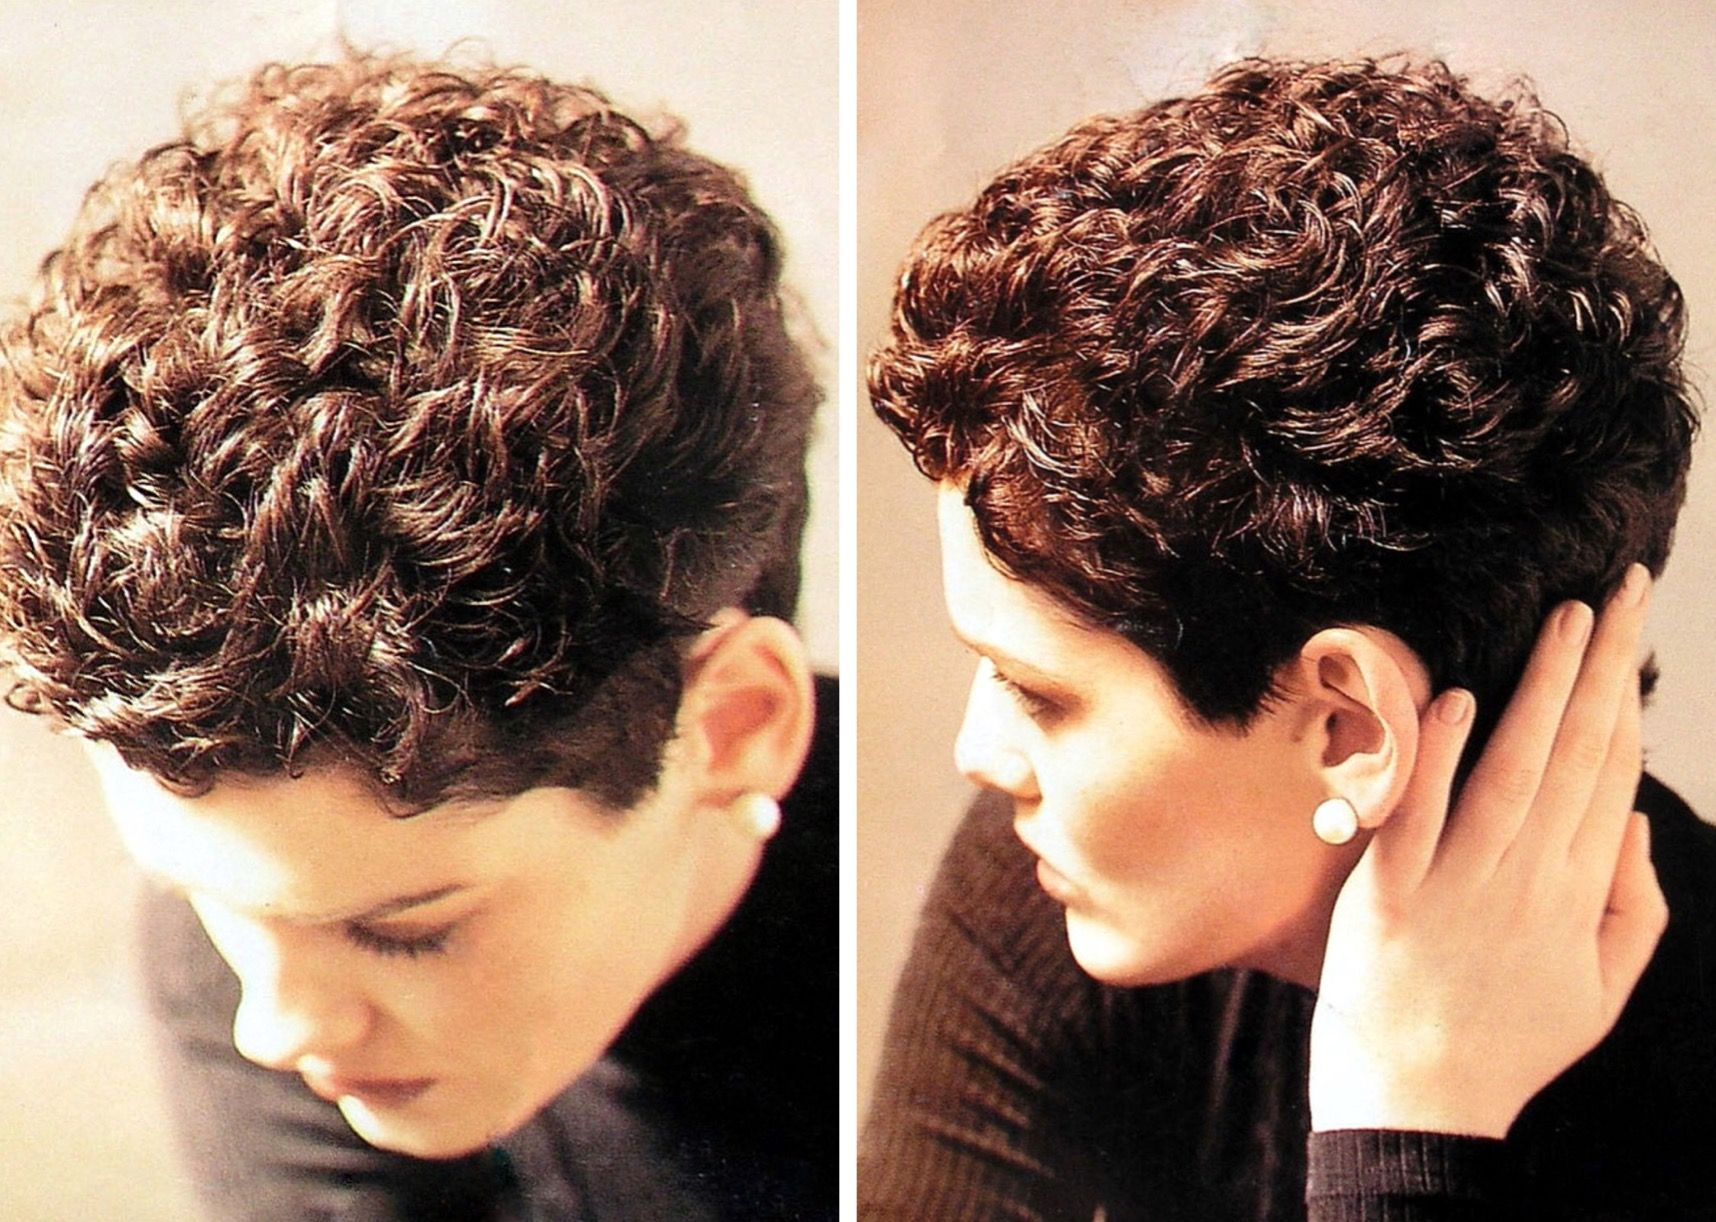 The Perm Is Cute Permed Hairstyles Short Hair Styles Short Curly Hair